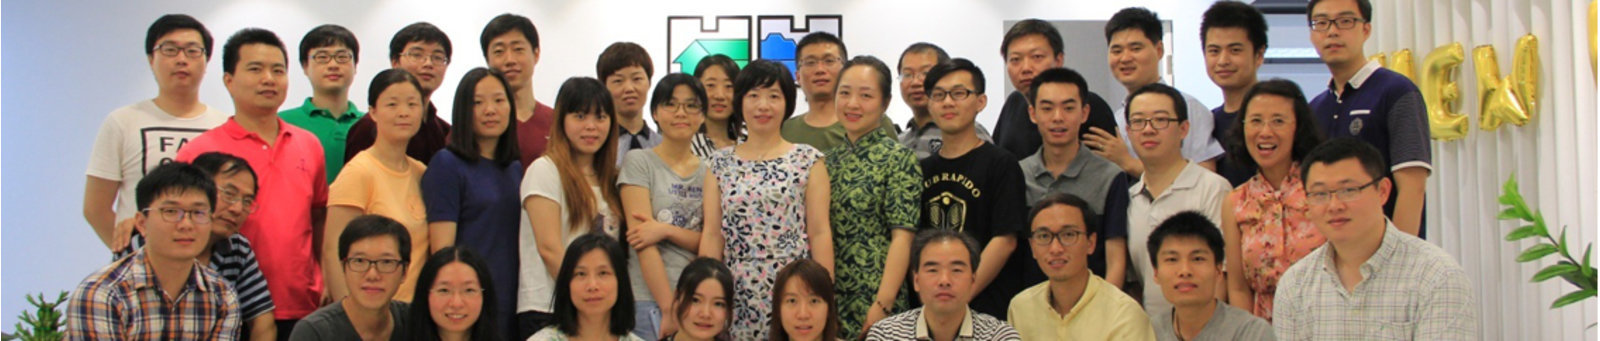 Heinen & Hopman China (Shanghai) moved to a new office